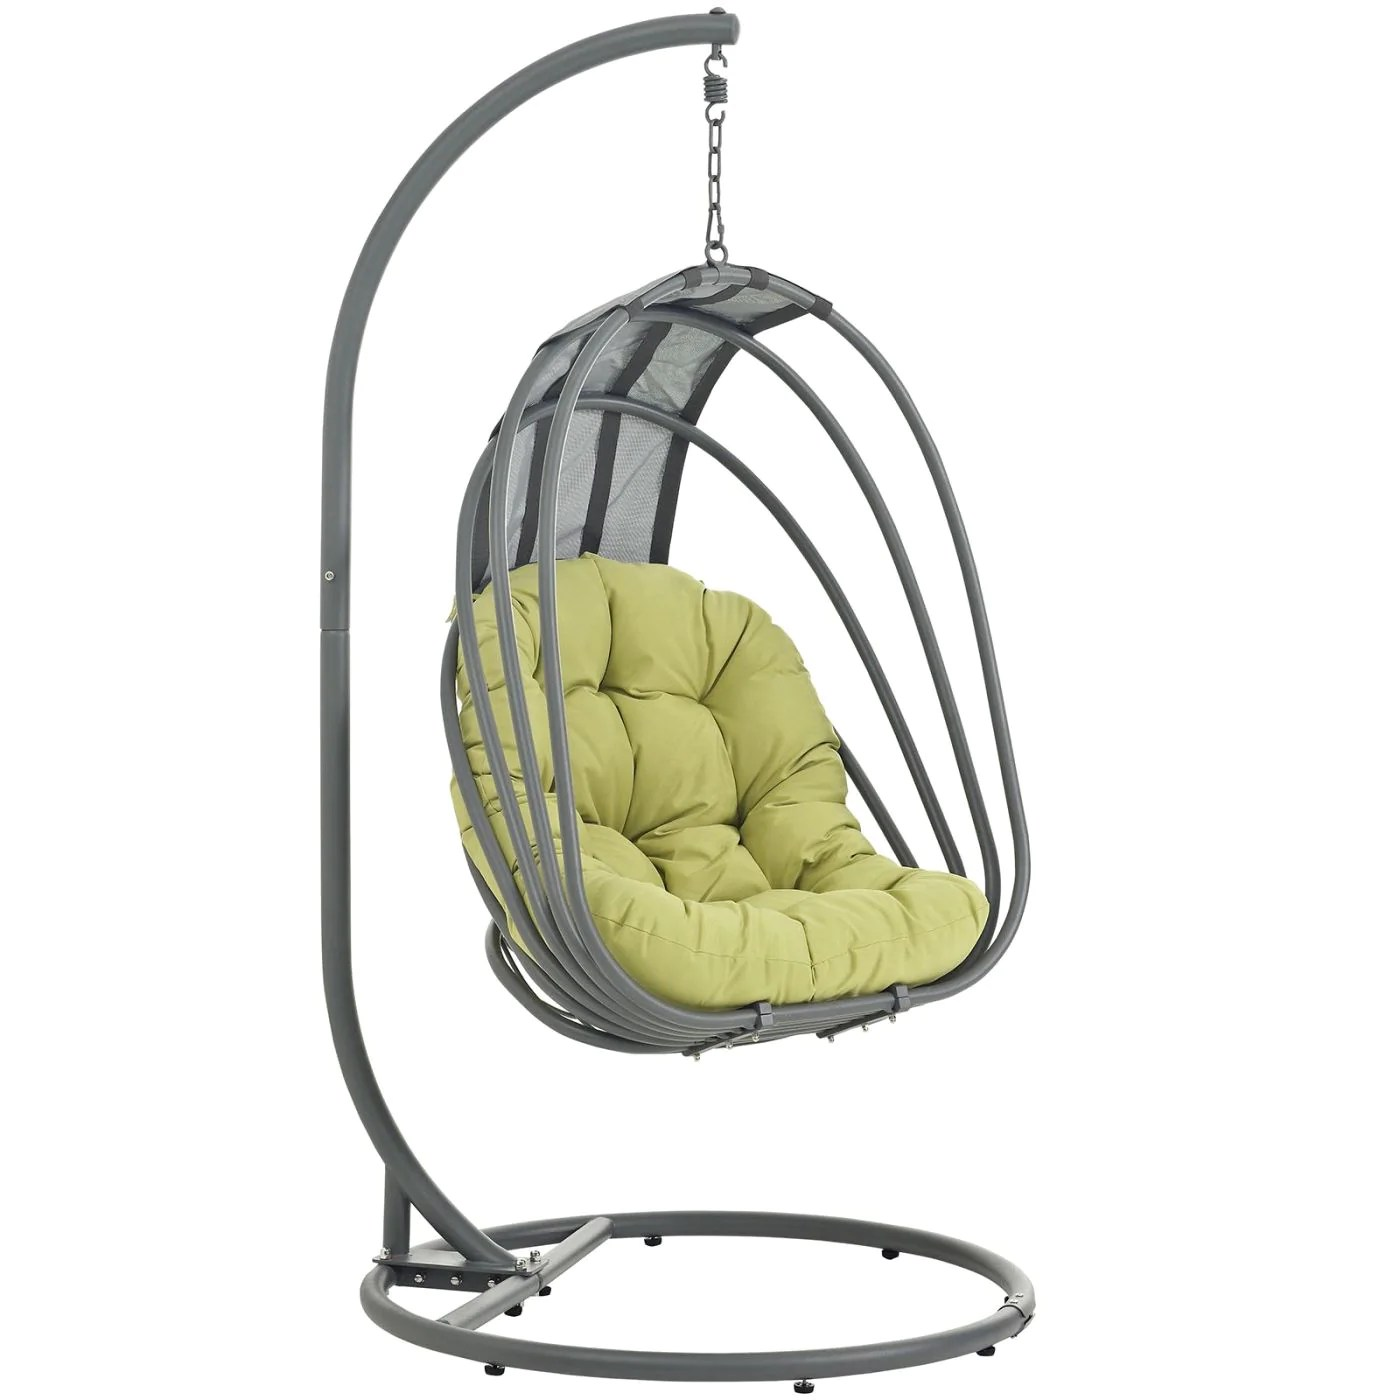 hanging patio swing chair bunjo target modway outdoor lounge chairs on sale eei 2275 per set whisk with stand peridot